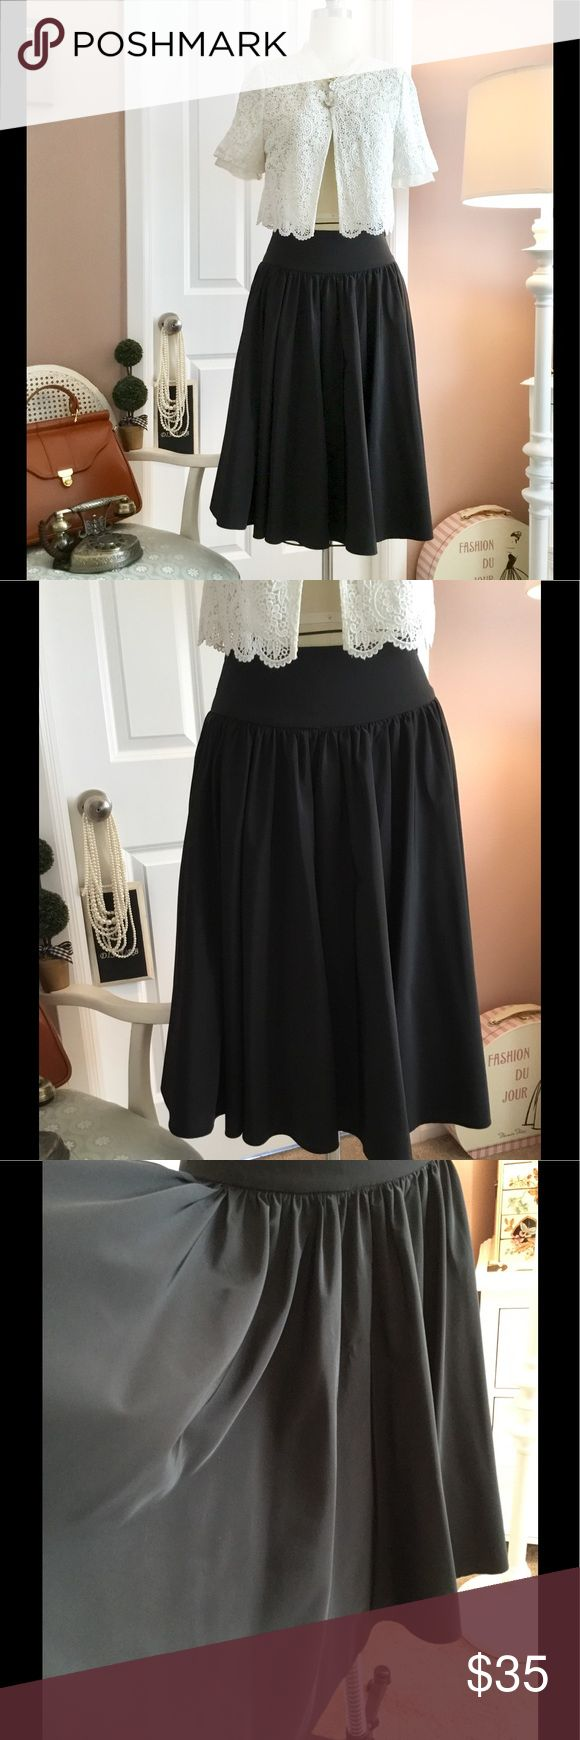 """Black circle skirt *Good condition *Zipper on the side Flat measurement: 13.5 waist, 25"""" length.  *Satin type of fabric  ☕️No shipping during weekends :) Skirts"""